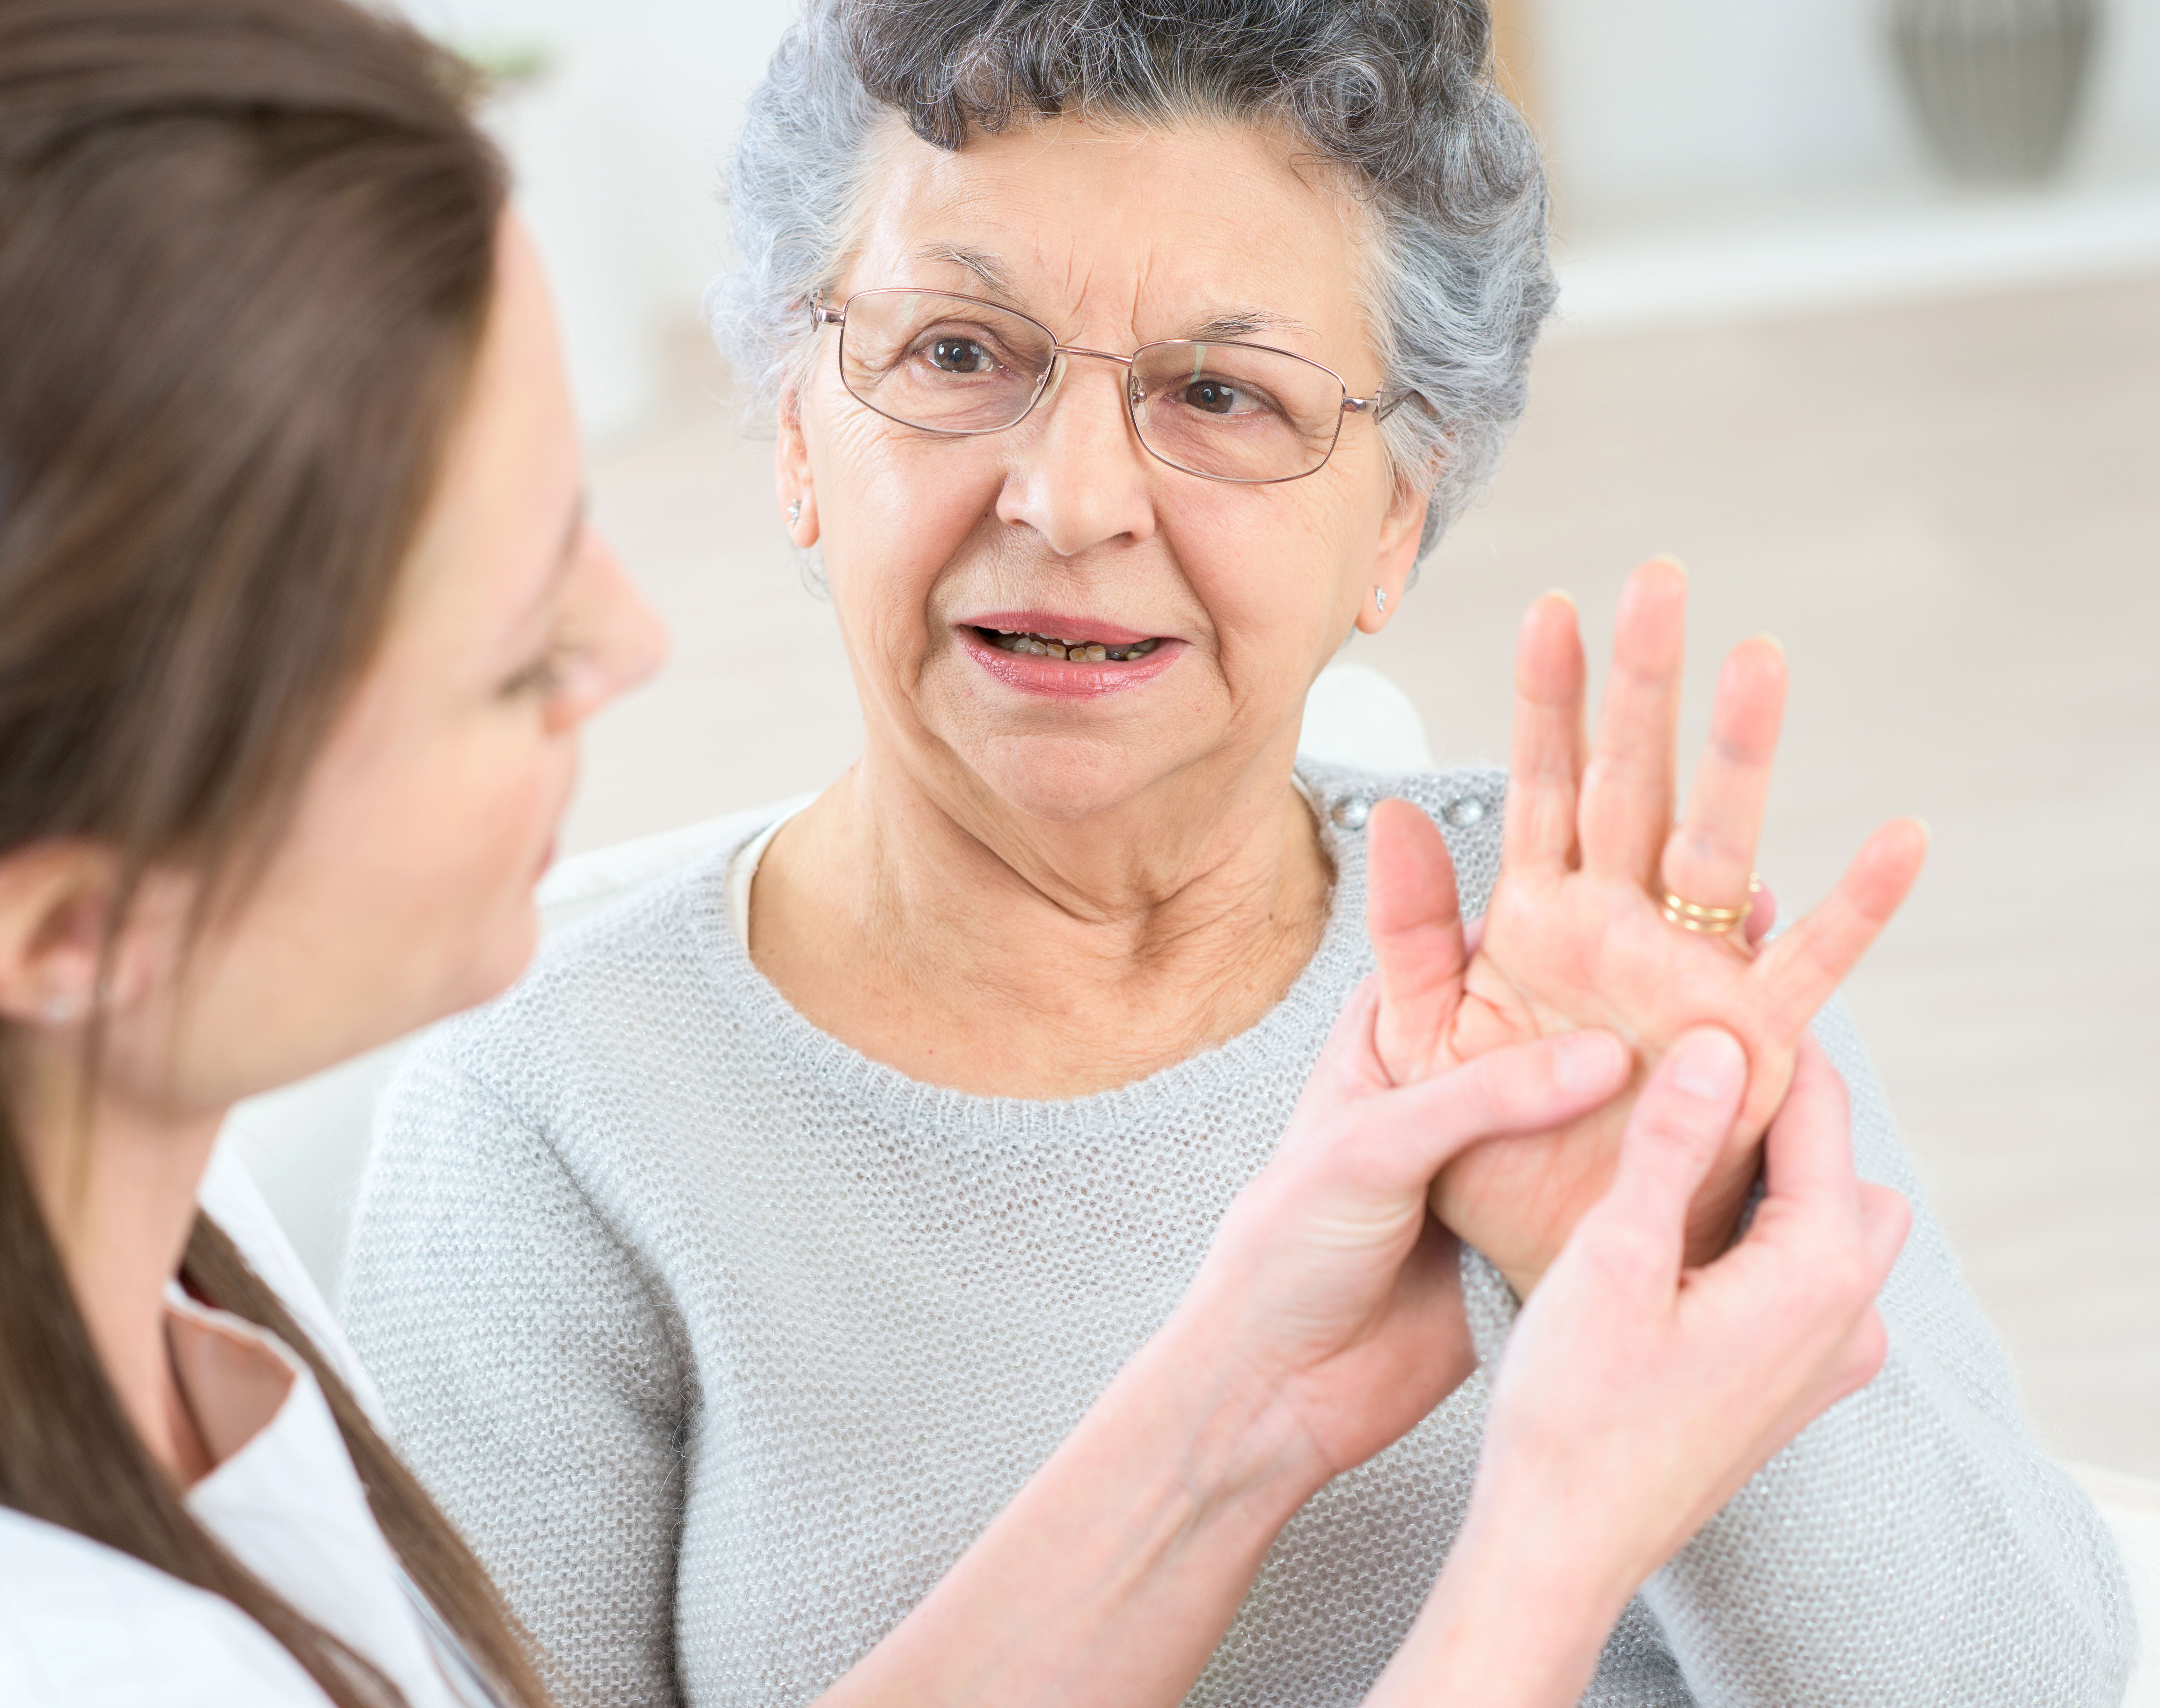 Physical therapist helping elderly woman with hand pain